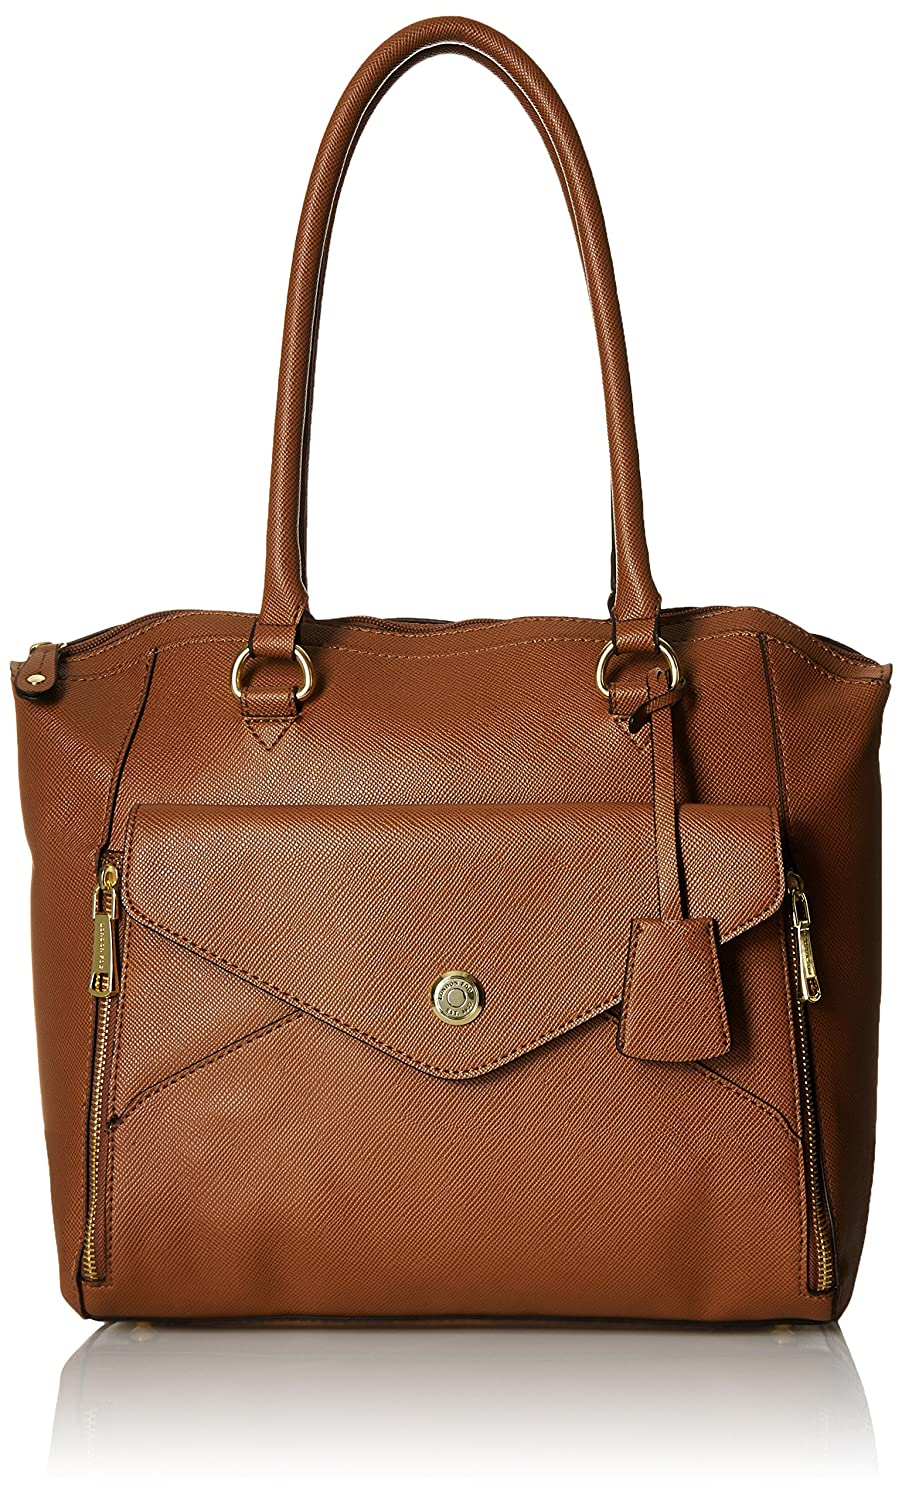 London Fog Fenwick Stye Tote Bag